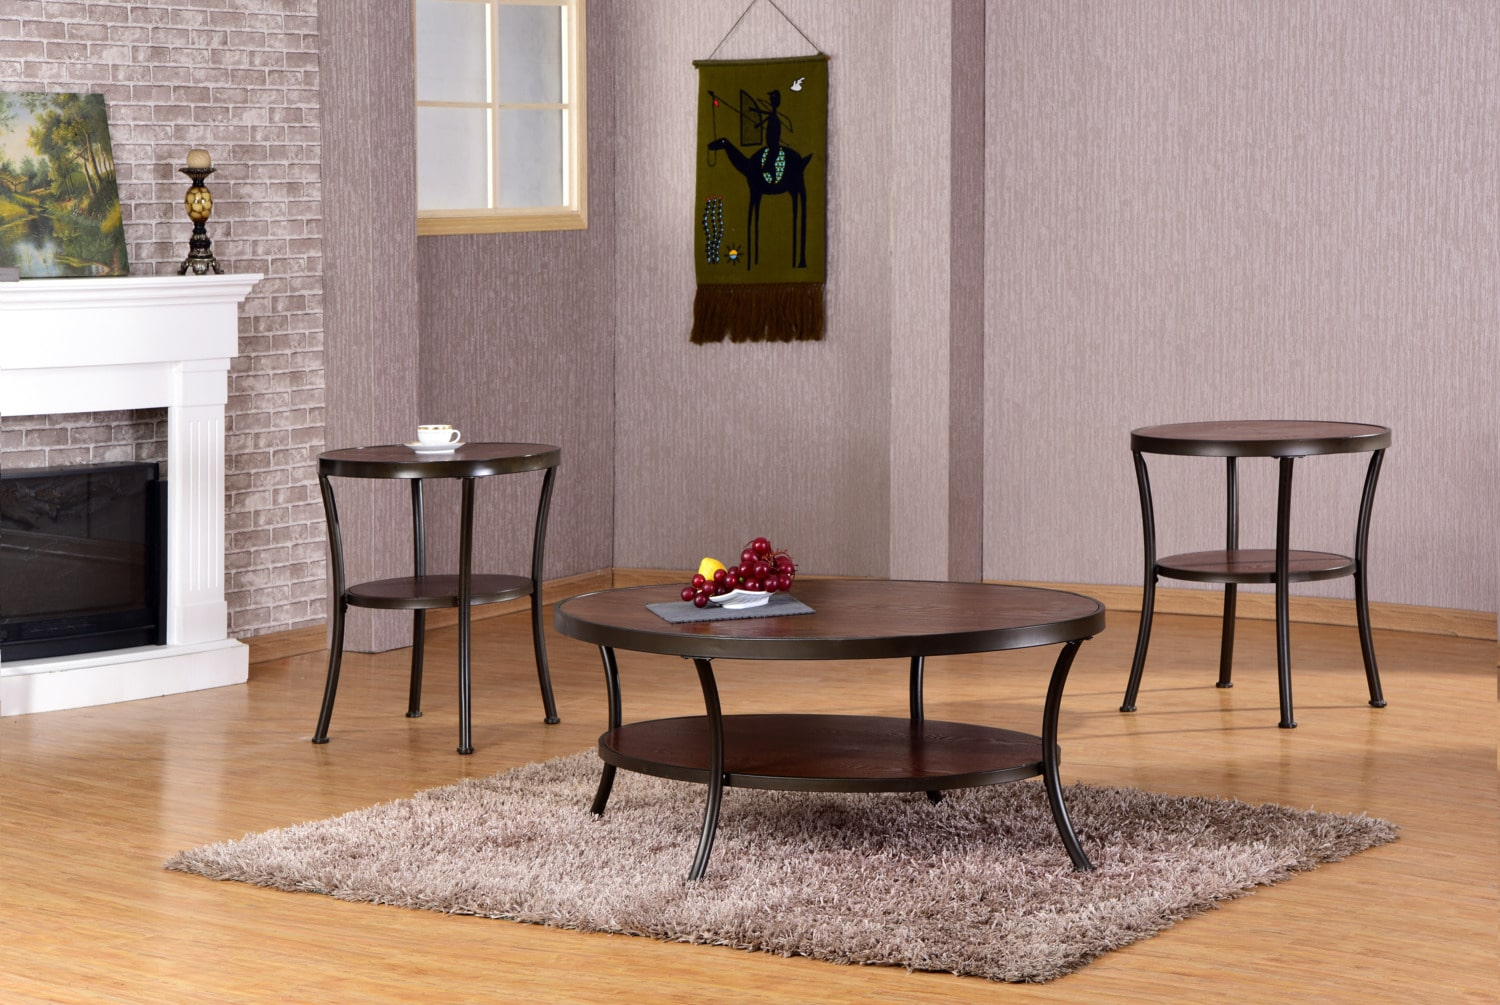 Palmer Coffee Table and Two End Tables - Brown